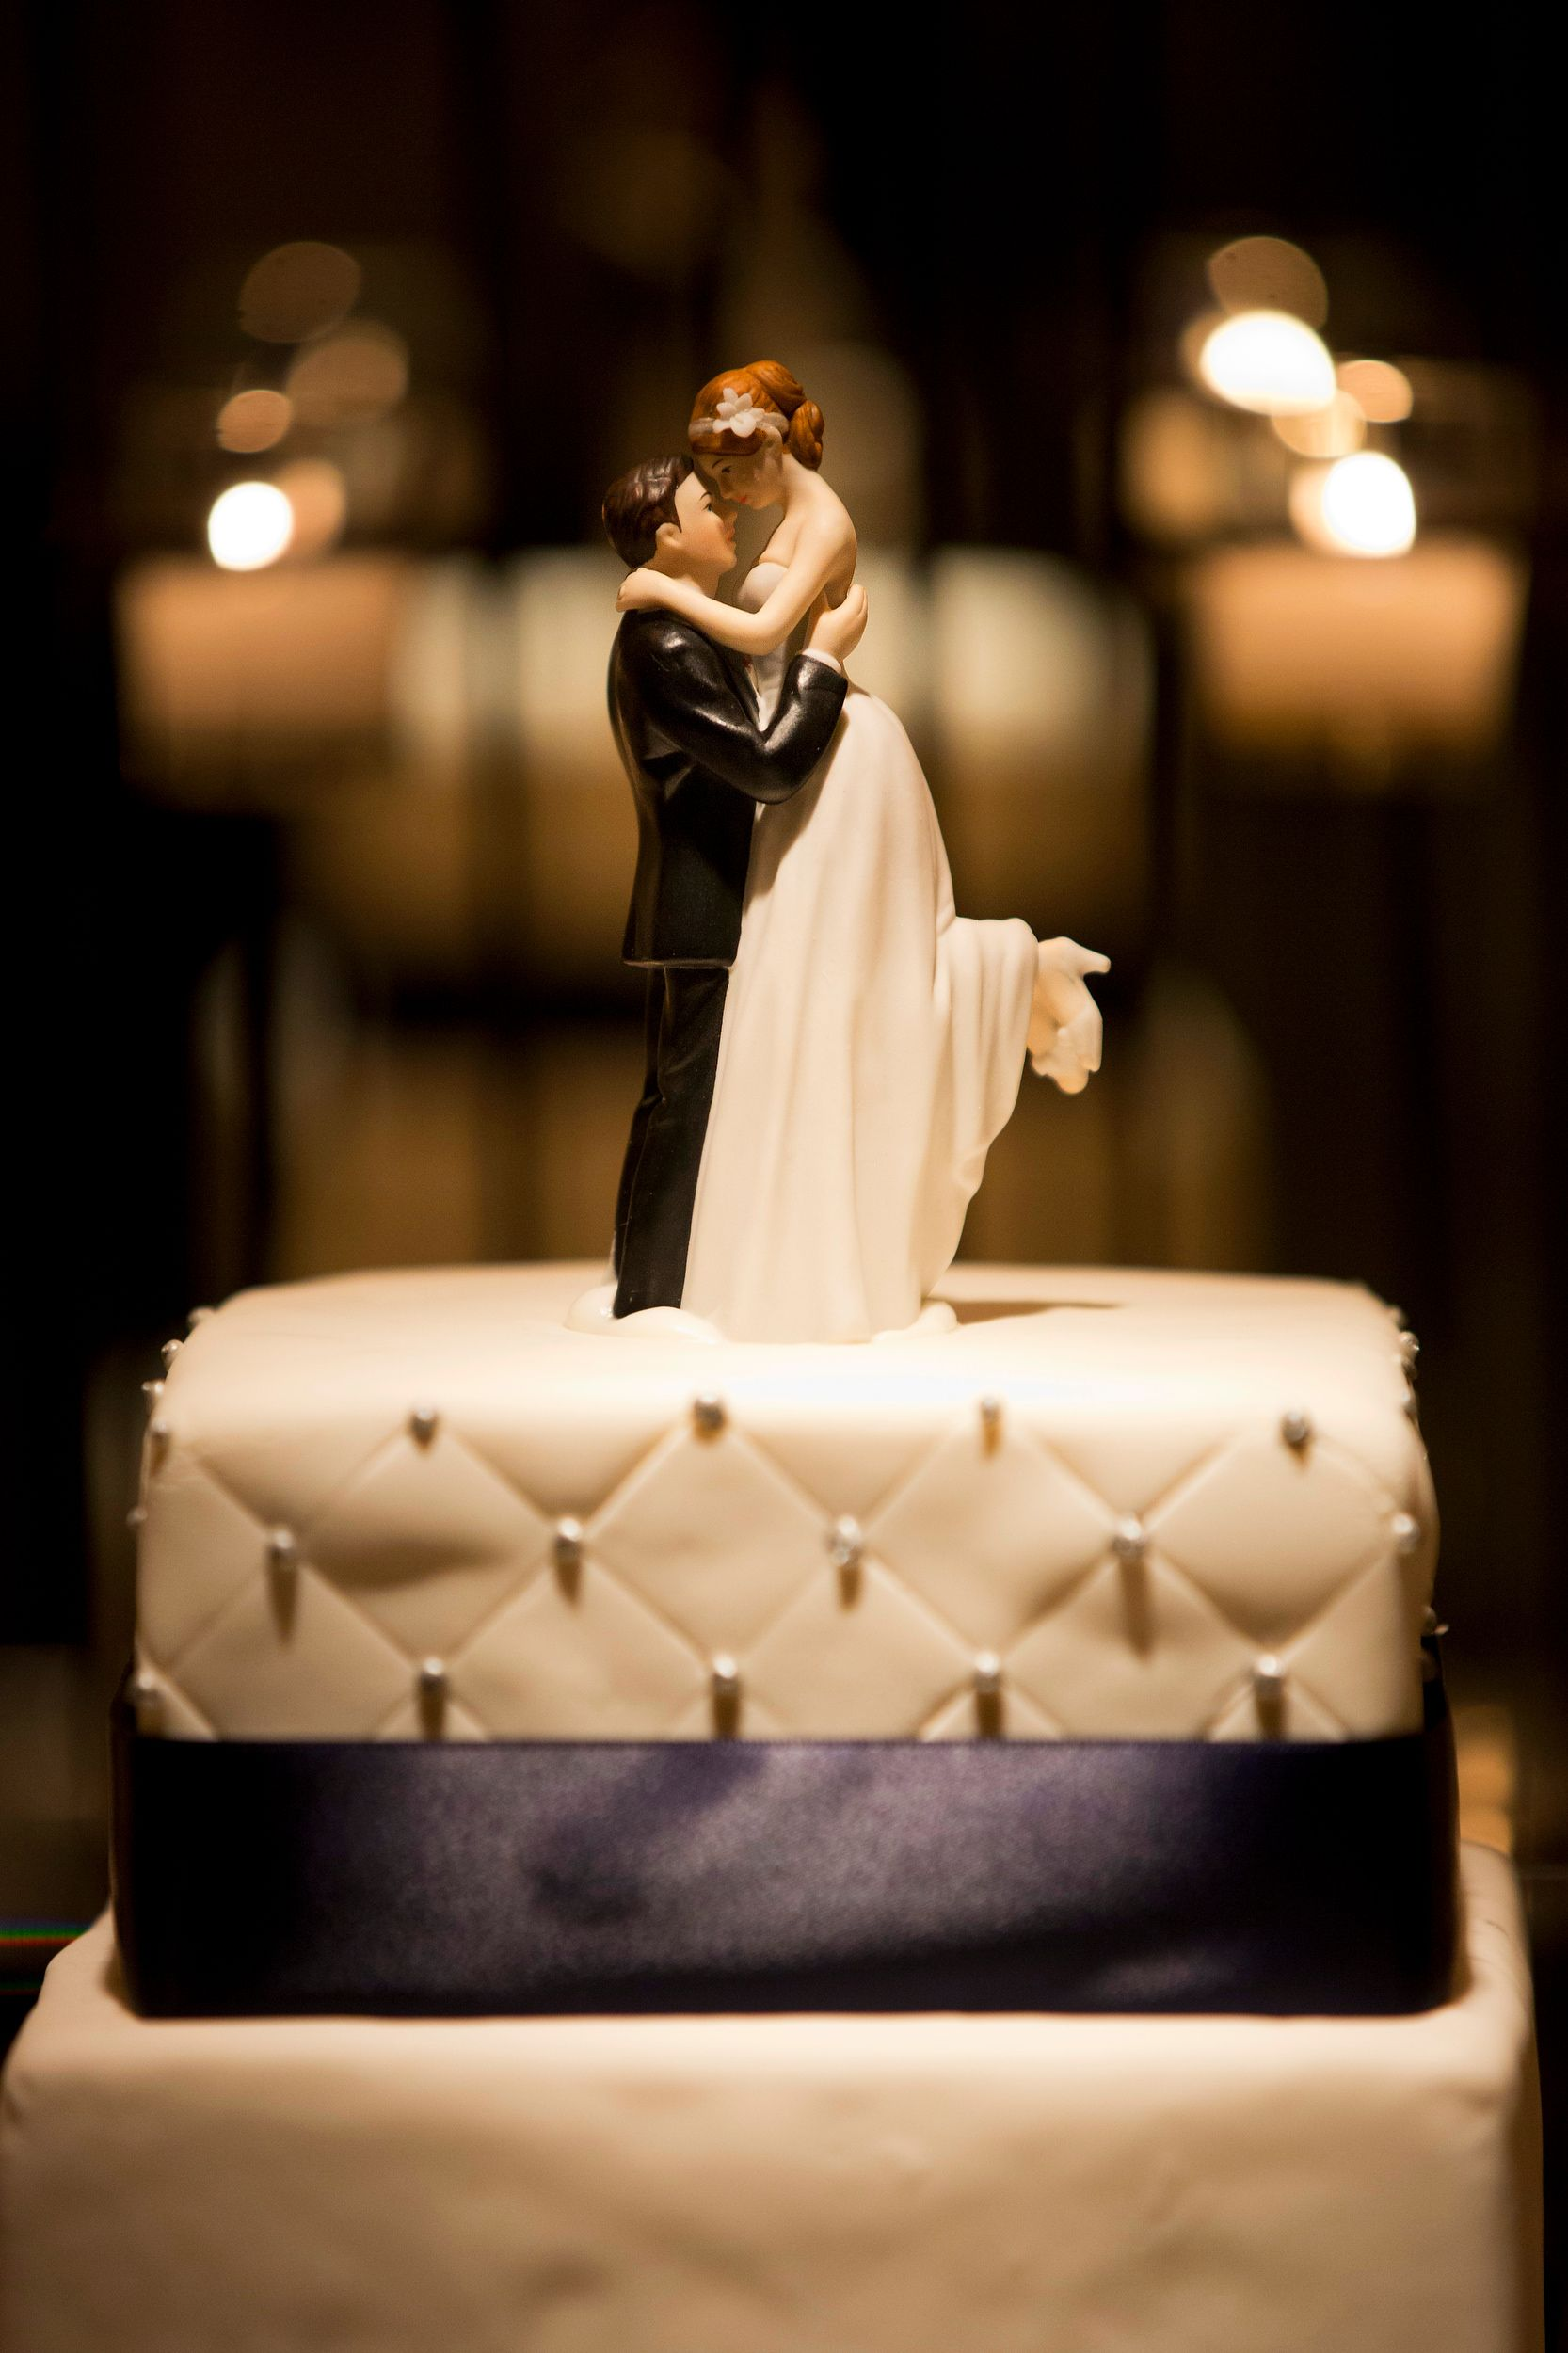 Wedding Cake Toppers Funny With Images Funny Wedding Cakes